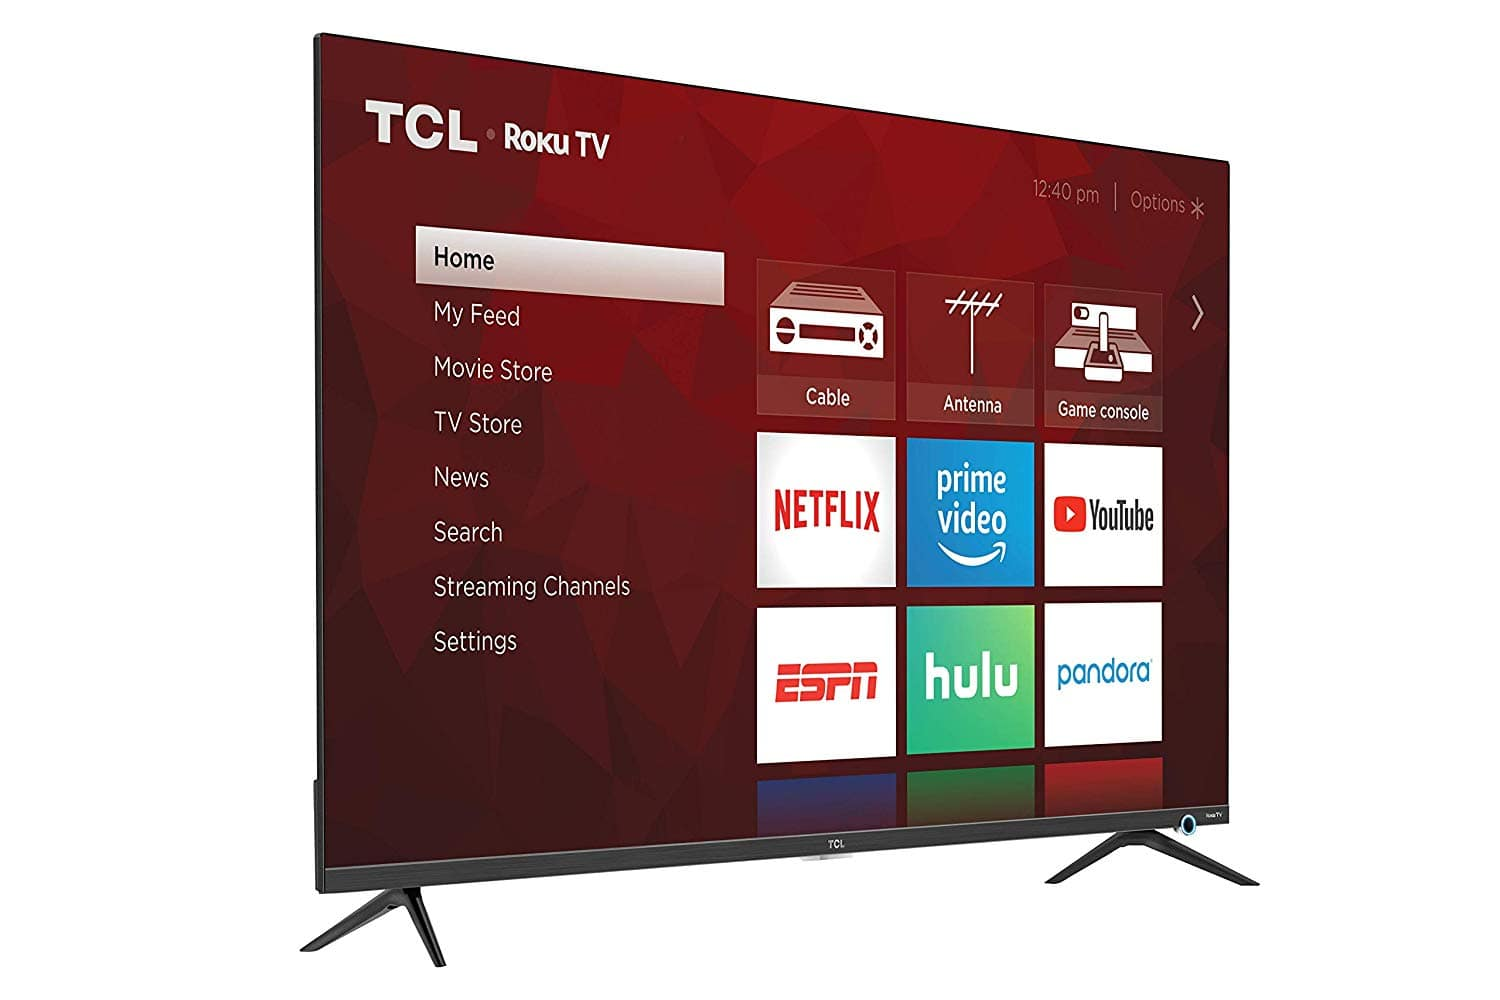 """TCL 50"""" Class 5-Series 4K UHD Dolby Vision HDR Roku Smart TV - 50S525 - at BestBuy for $254 + tax"""